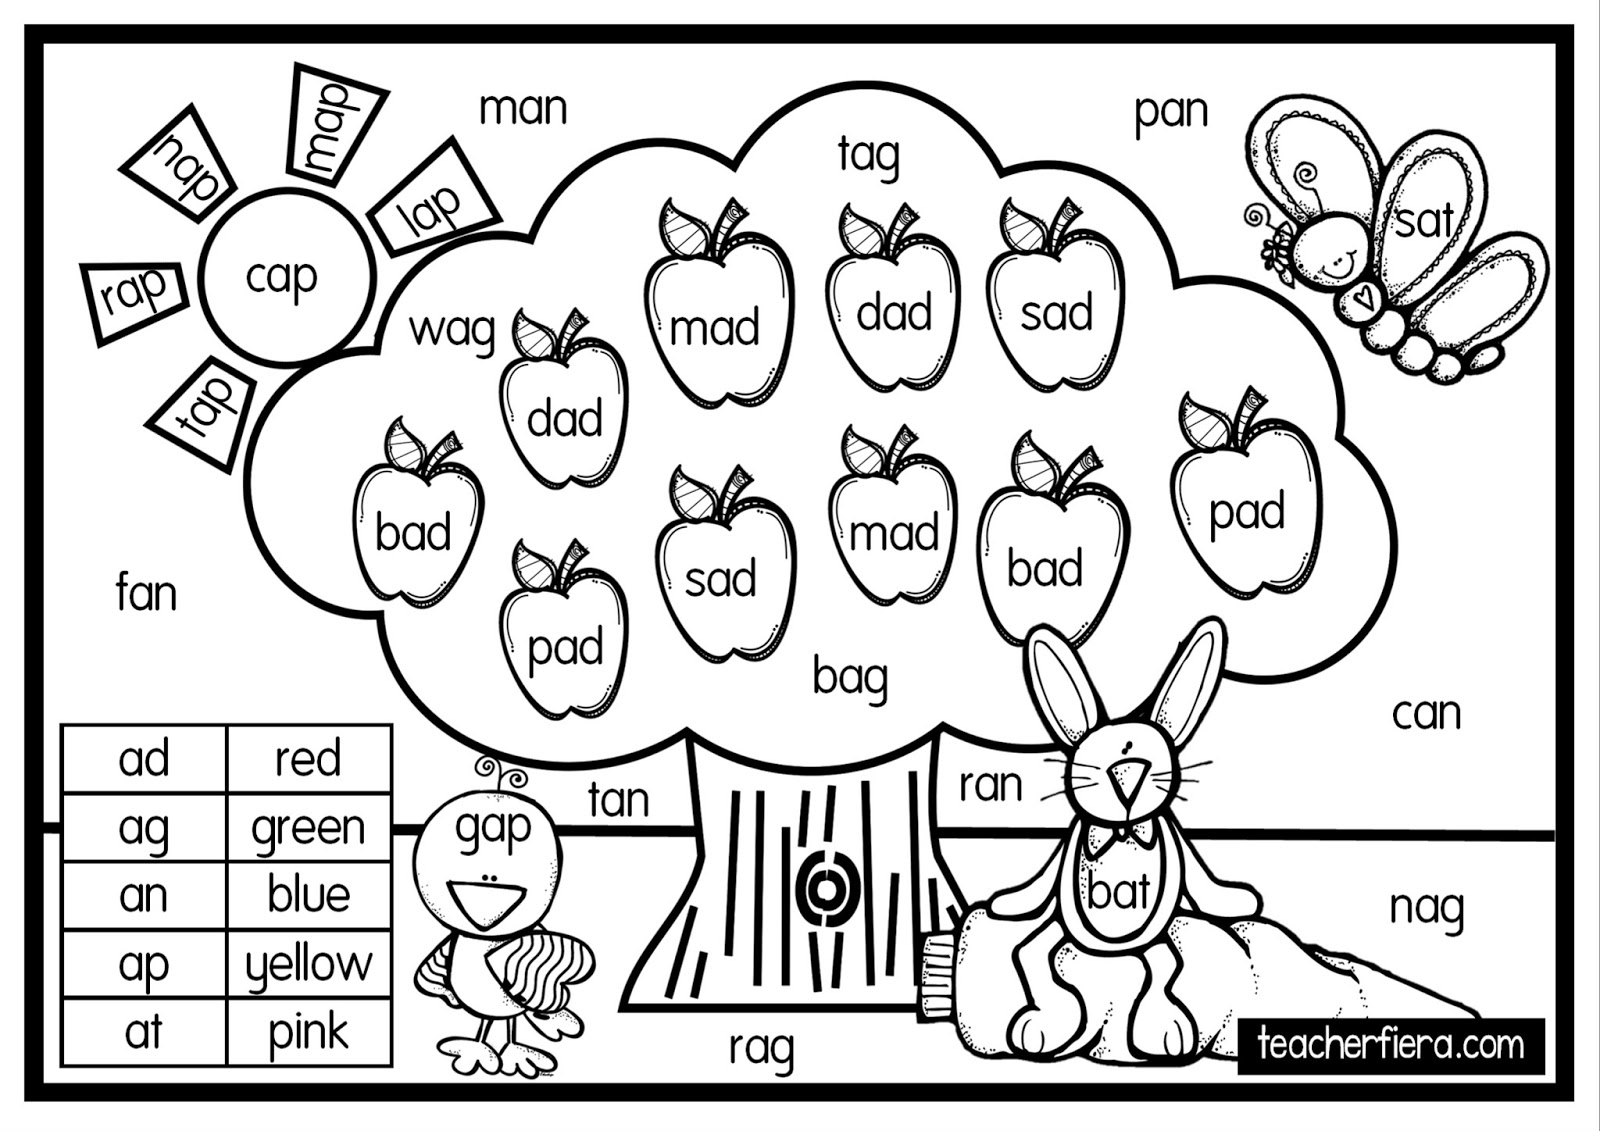 Teacherfiera Colour By Code Word Families